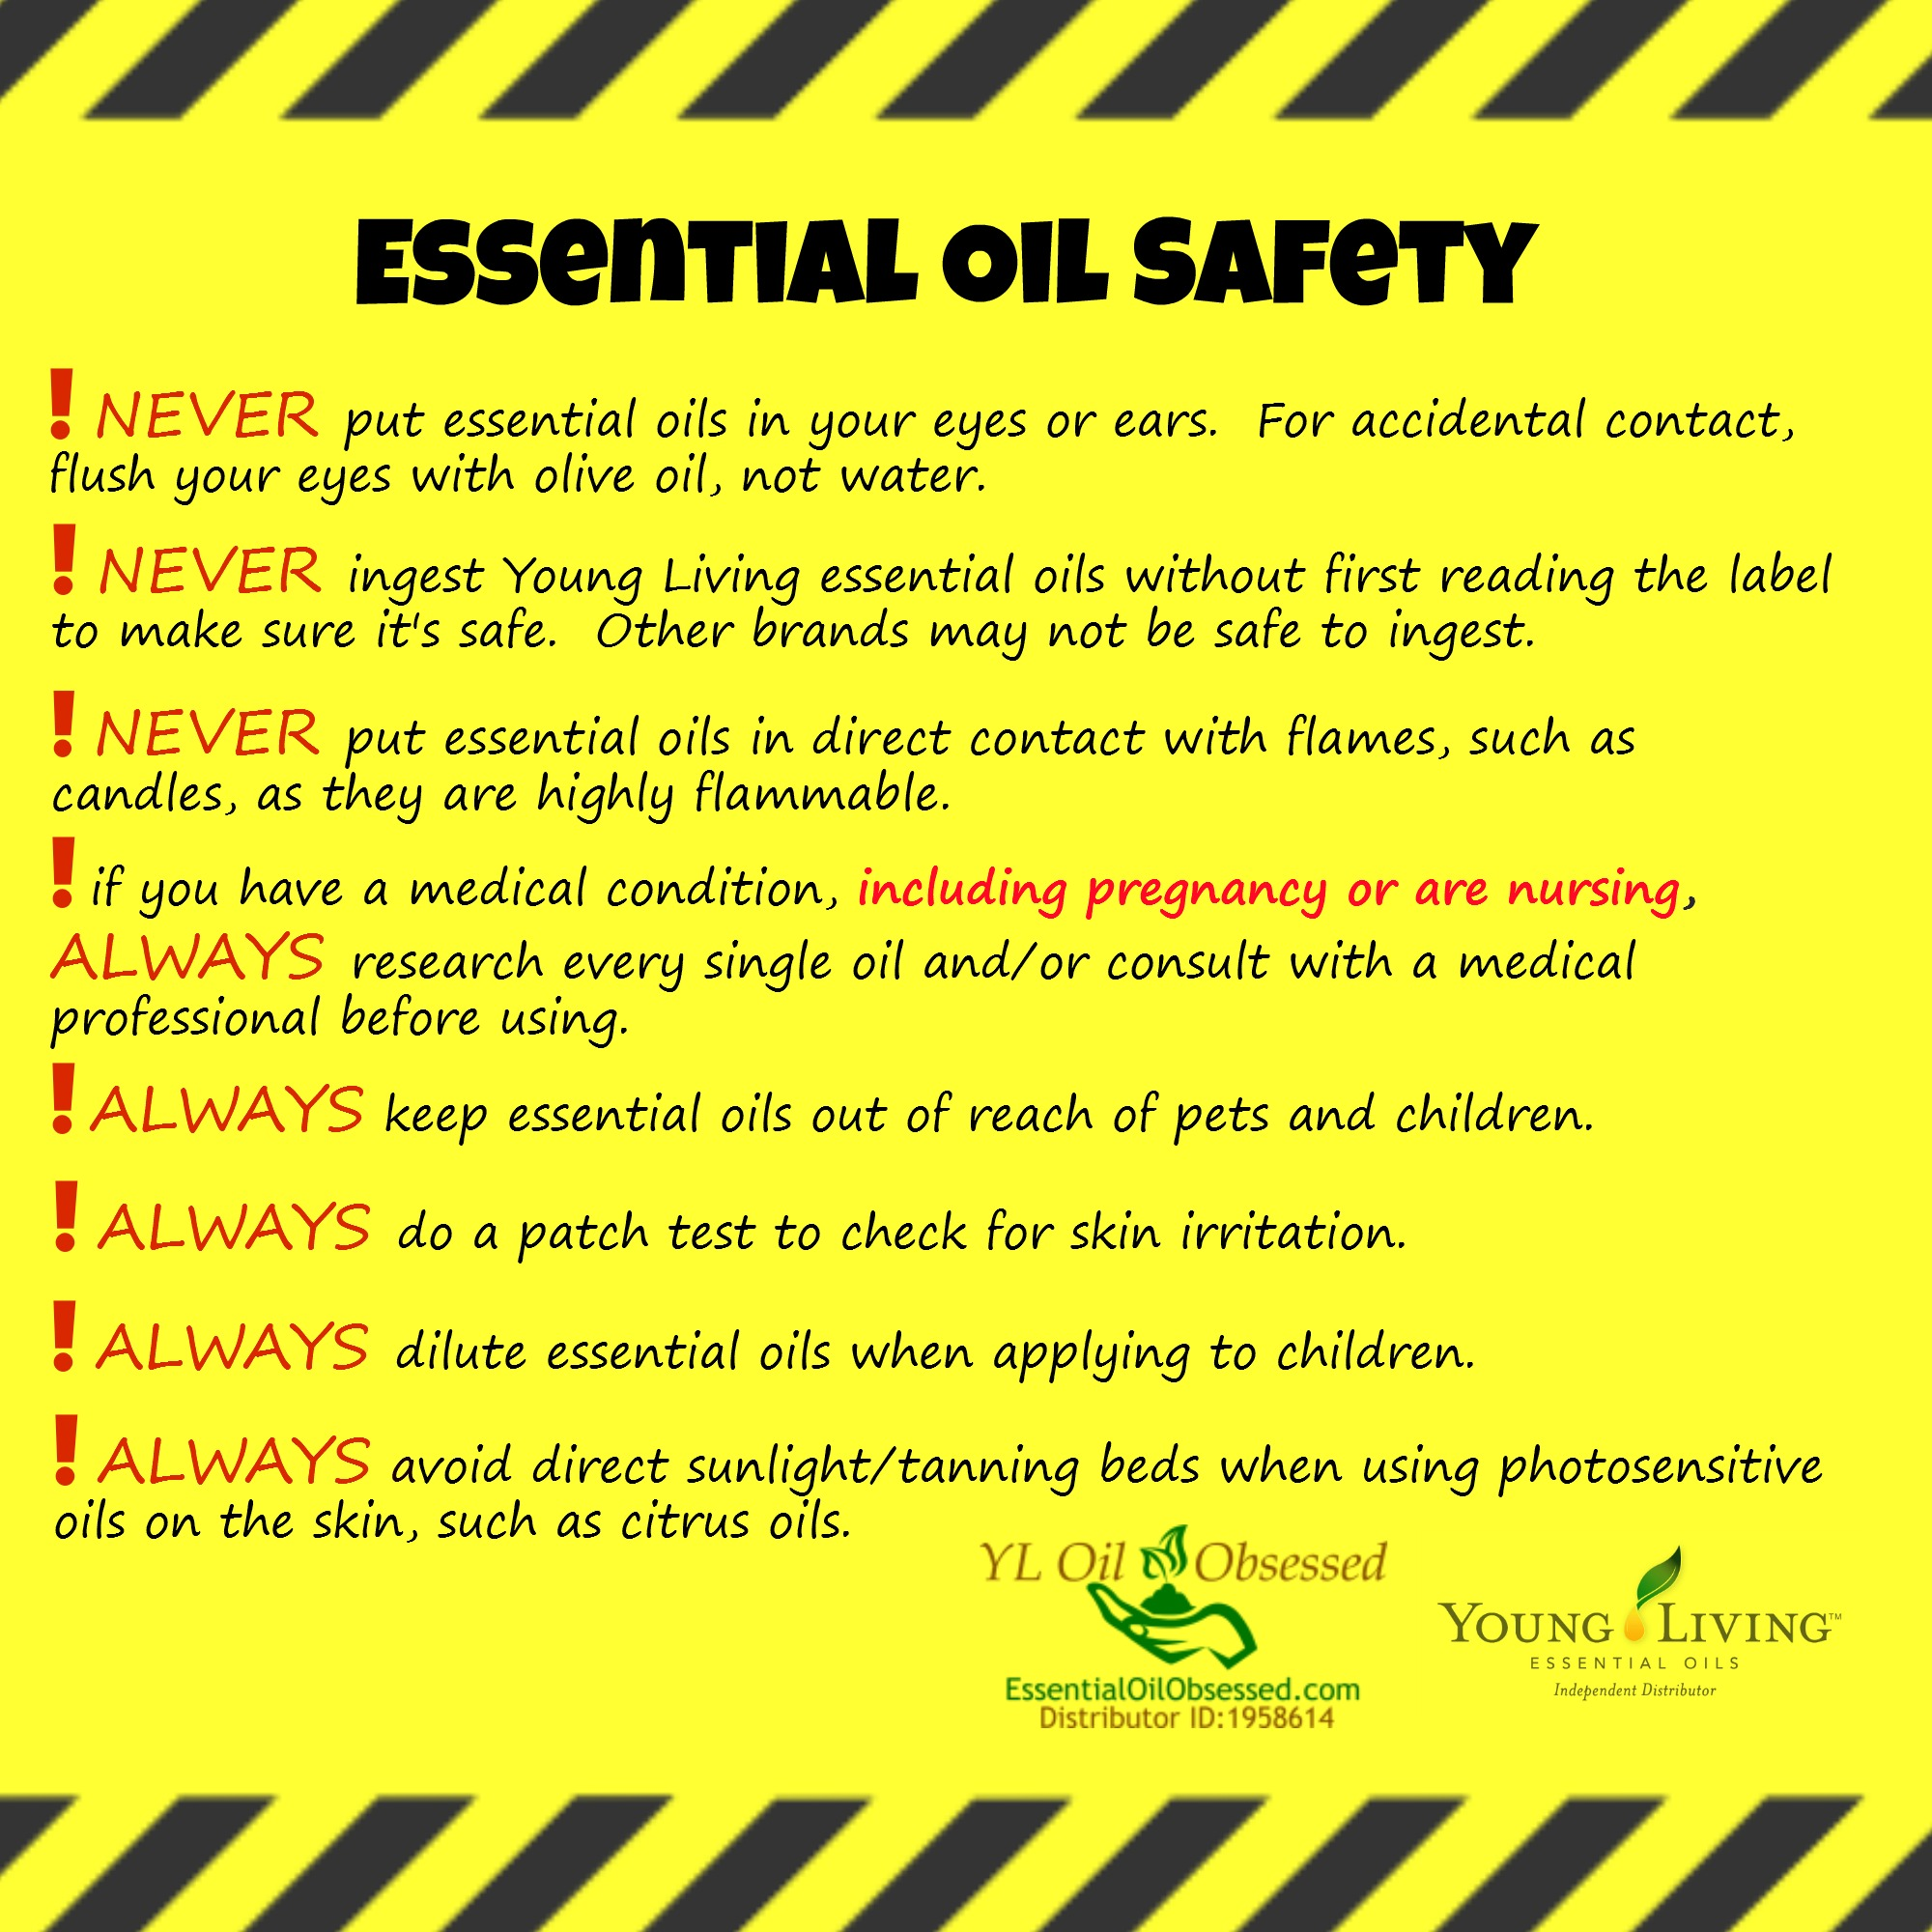 safety and hazards in oil and Proactive safety and health programs are an effective way to prevent workplace injuries and illnesses and reduce the costs of doing business many types of hazards, makes restaurant work very challenging in terms of keeping the workplace.